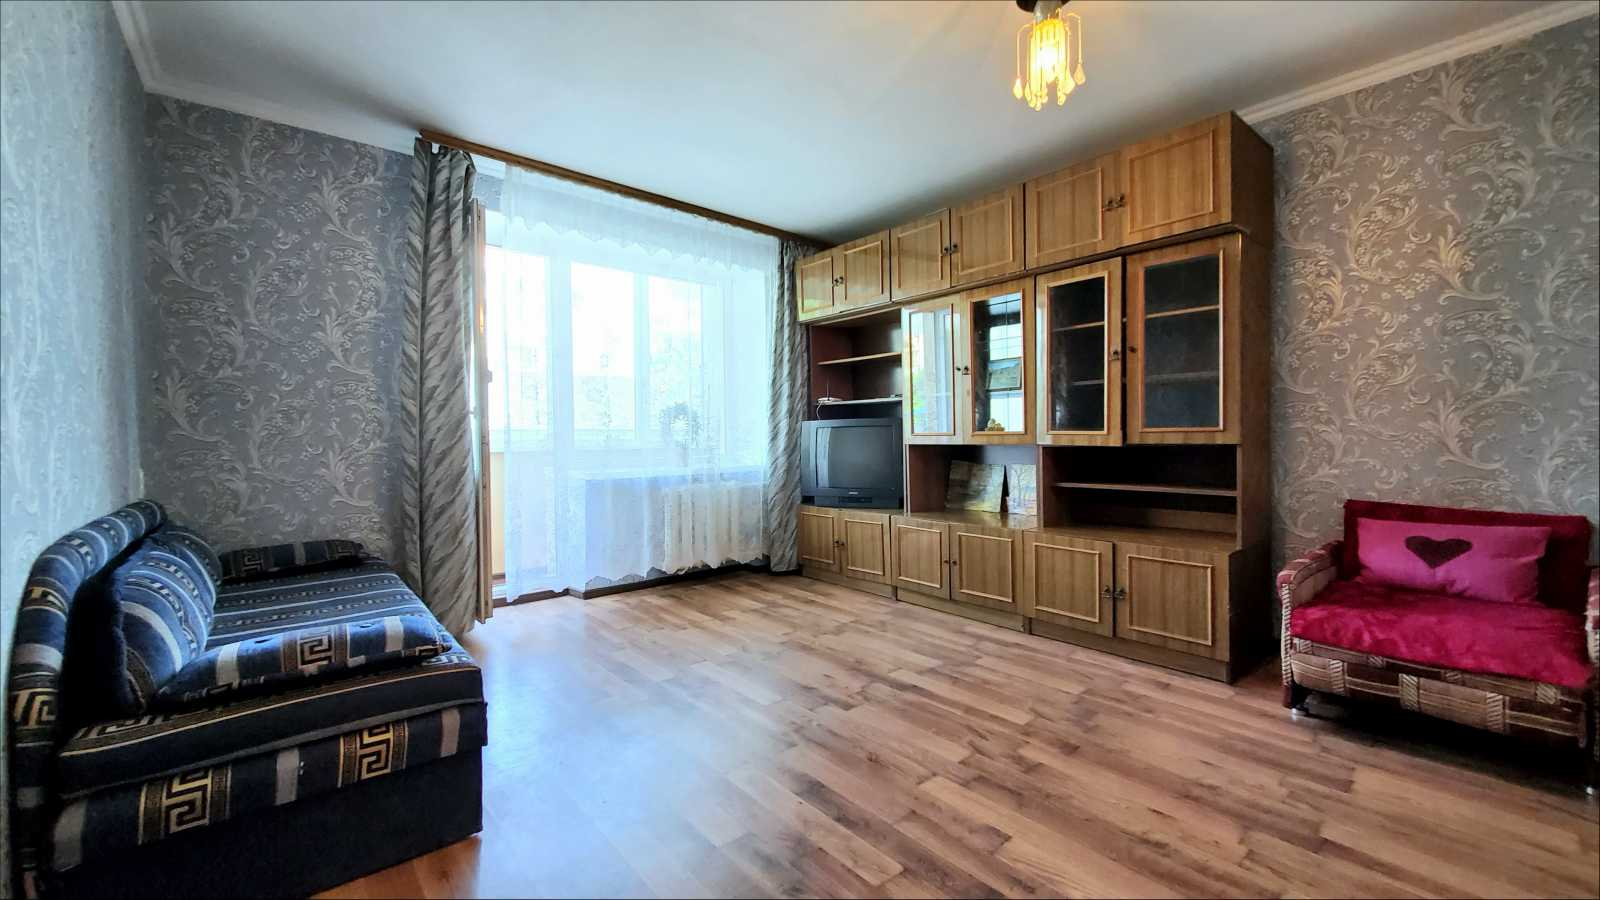 for rent 1 bedroom flat  Vinnytsya